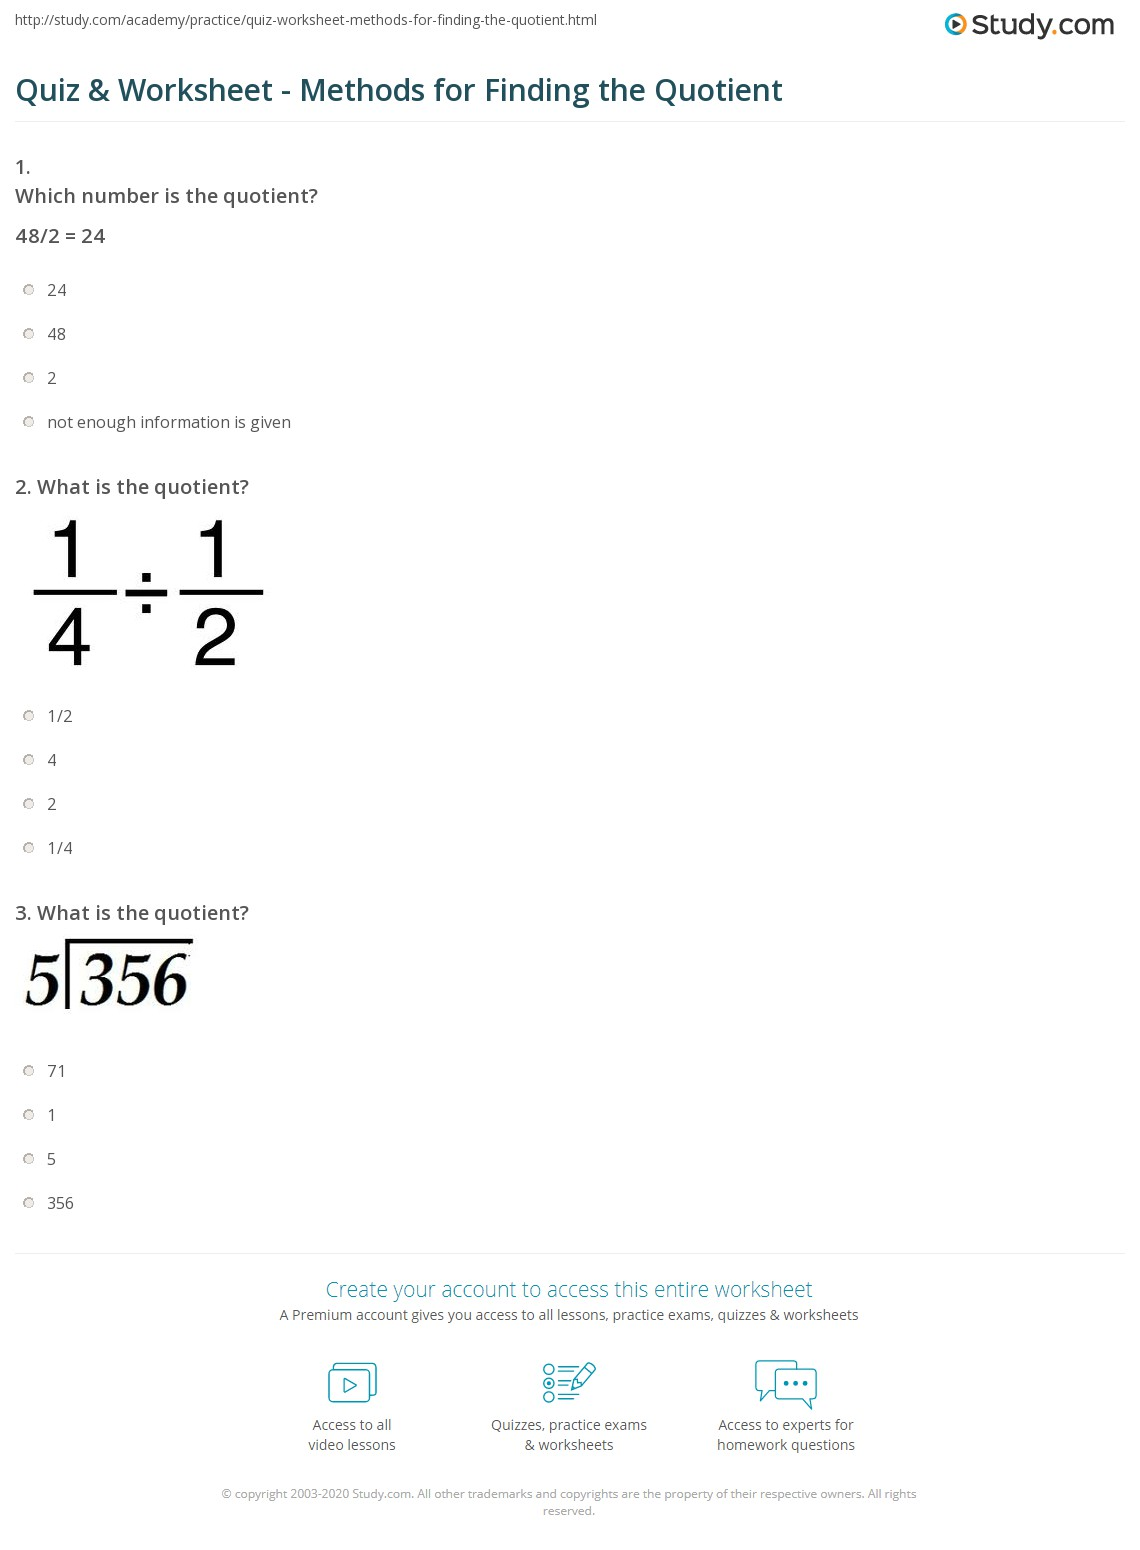 the quotient of a number example